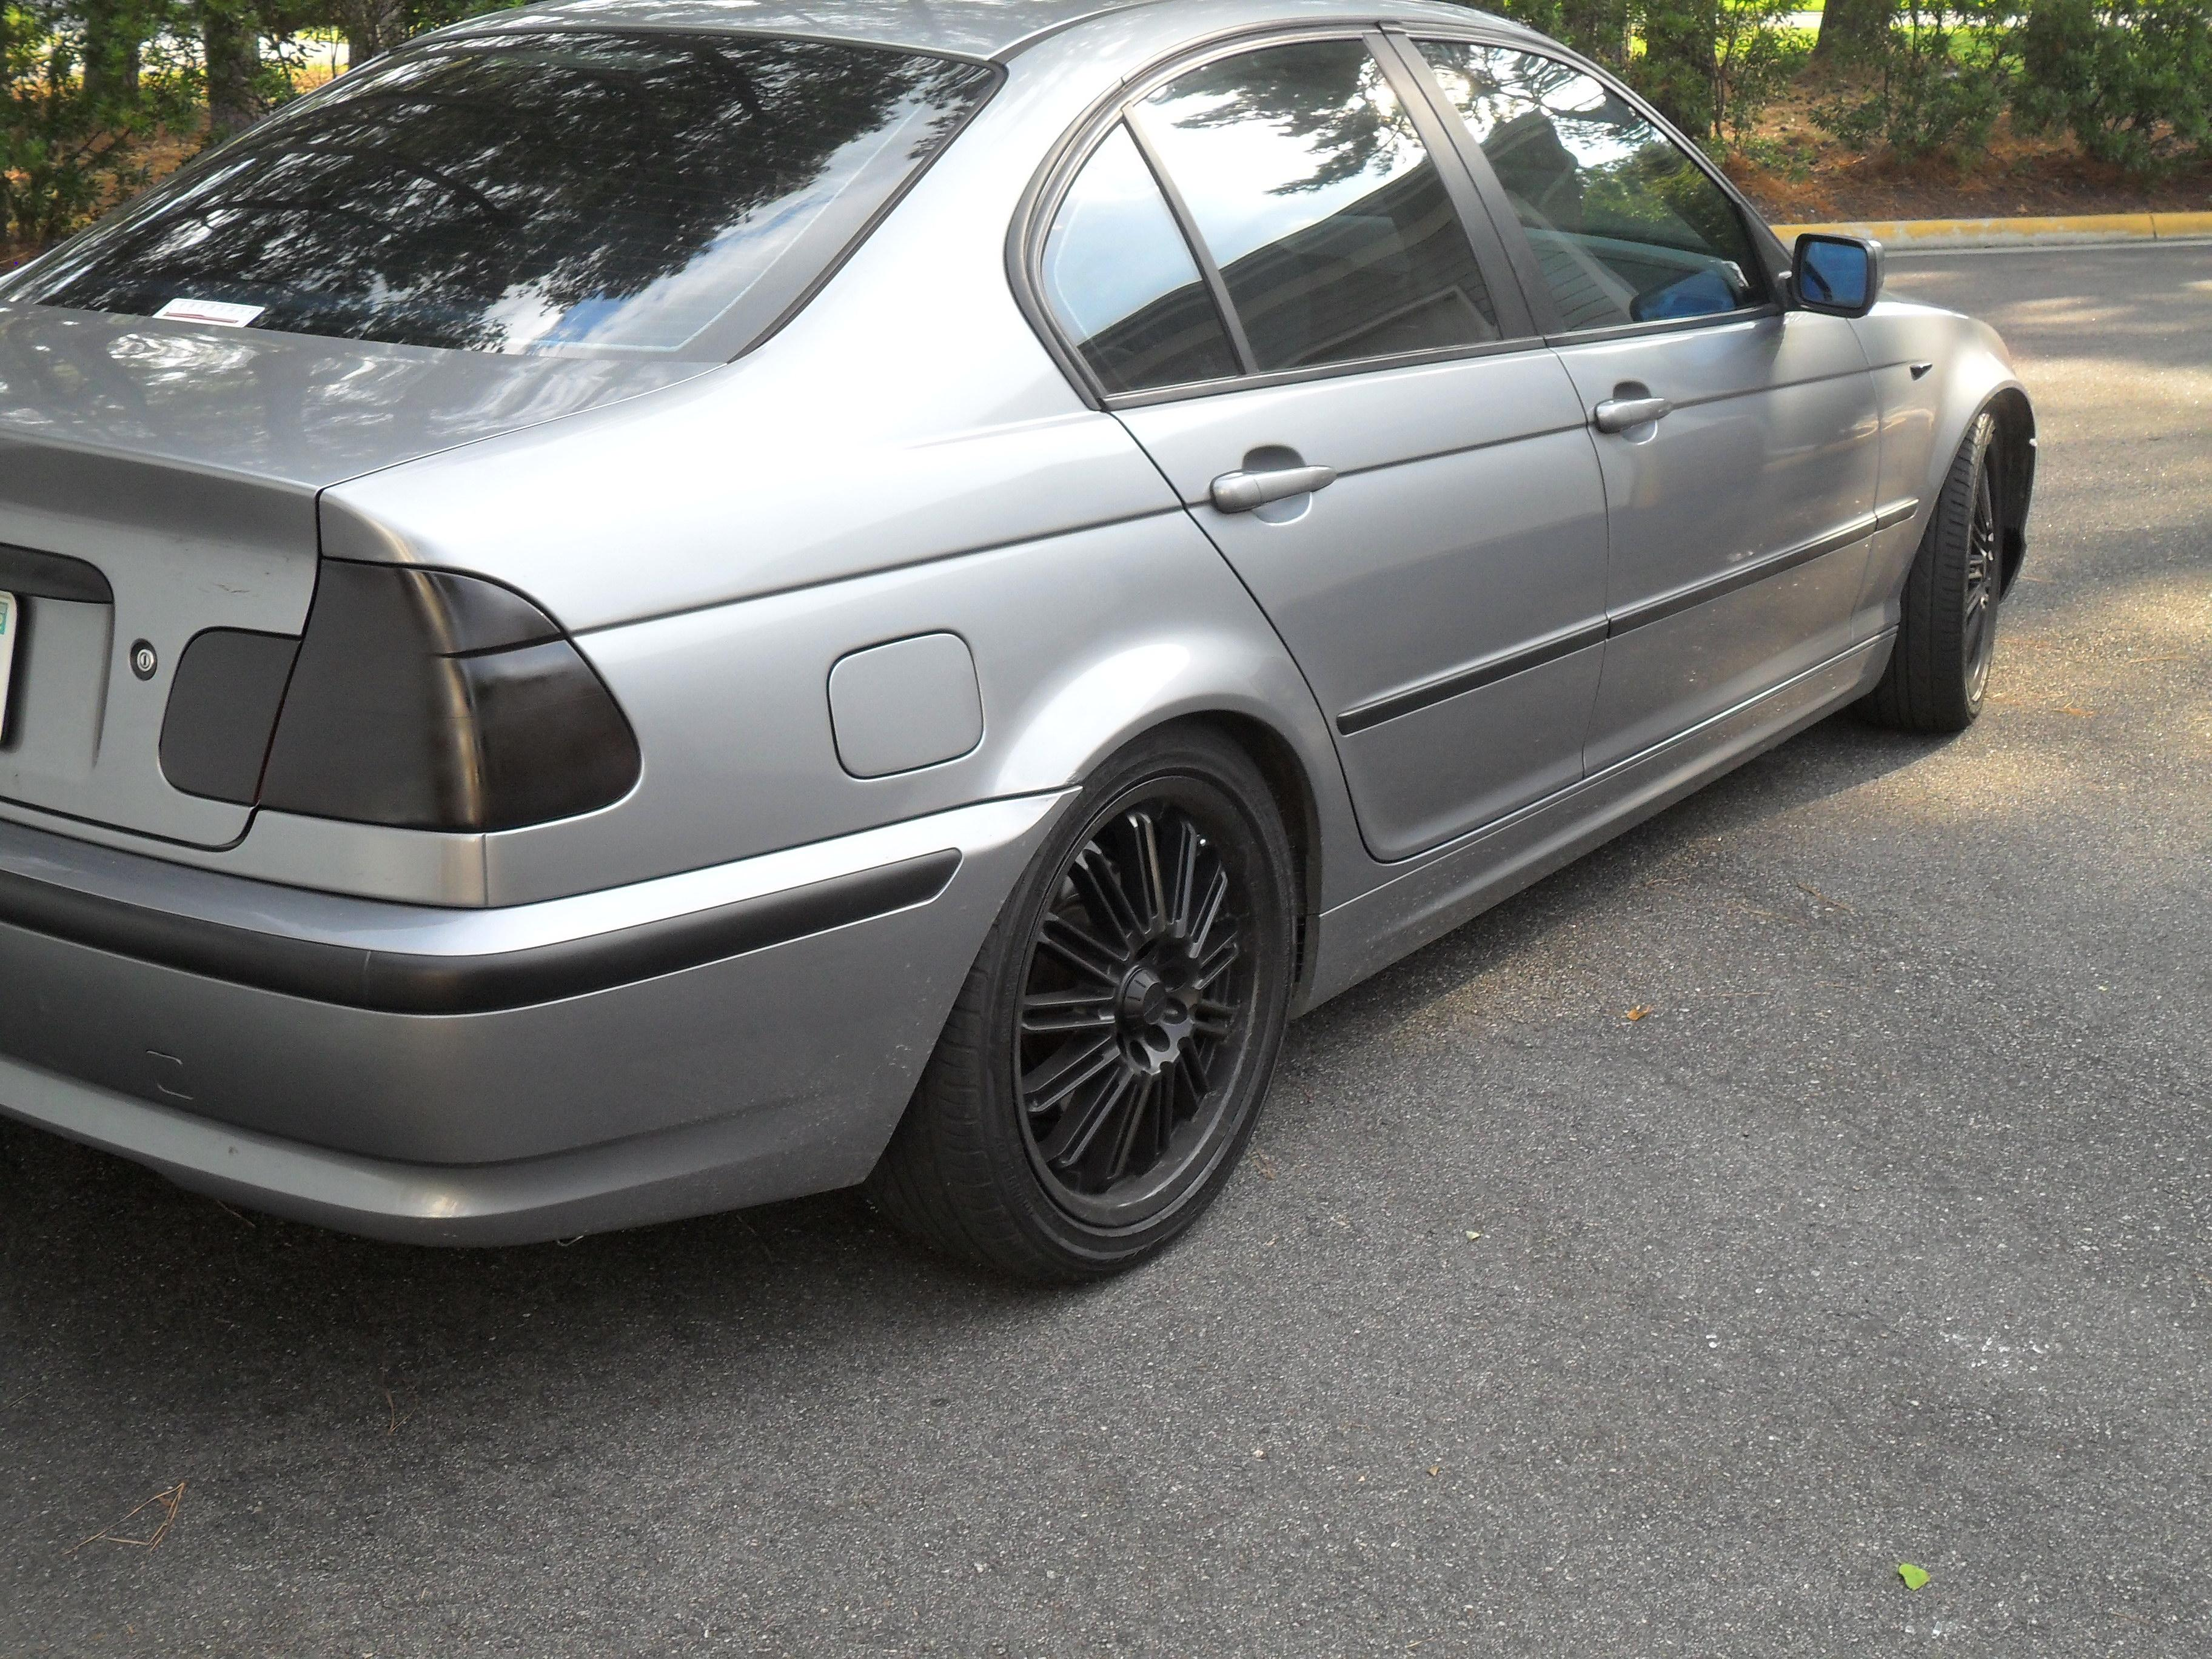 raymondwestgerde 2003 bmw 3 series325i sedan 4d specs photos modification info at cardomain. Black Bedroom Furniture Sets. Home Design Ideas